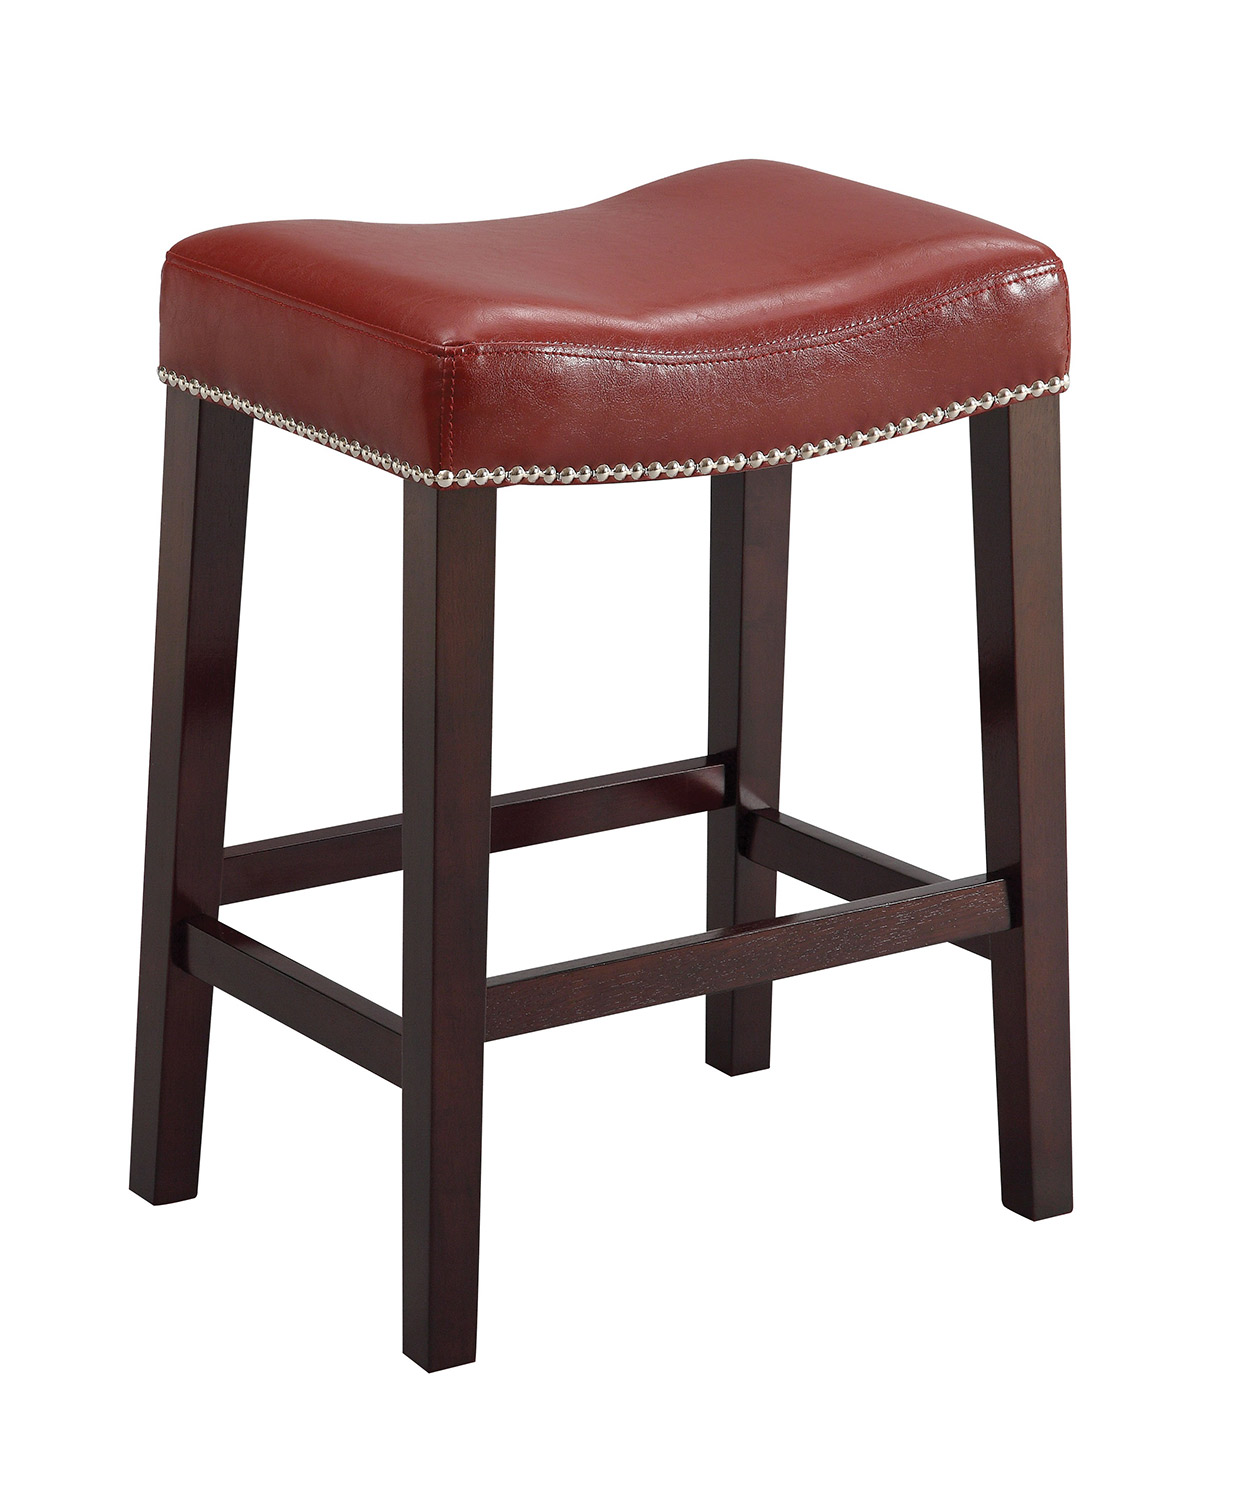 Acme Lewis Bar Stool - Red Vinyl/Espresso